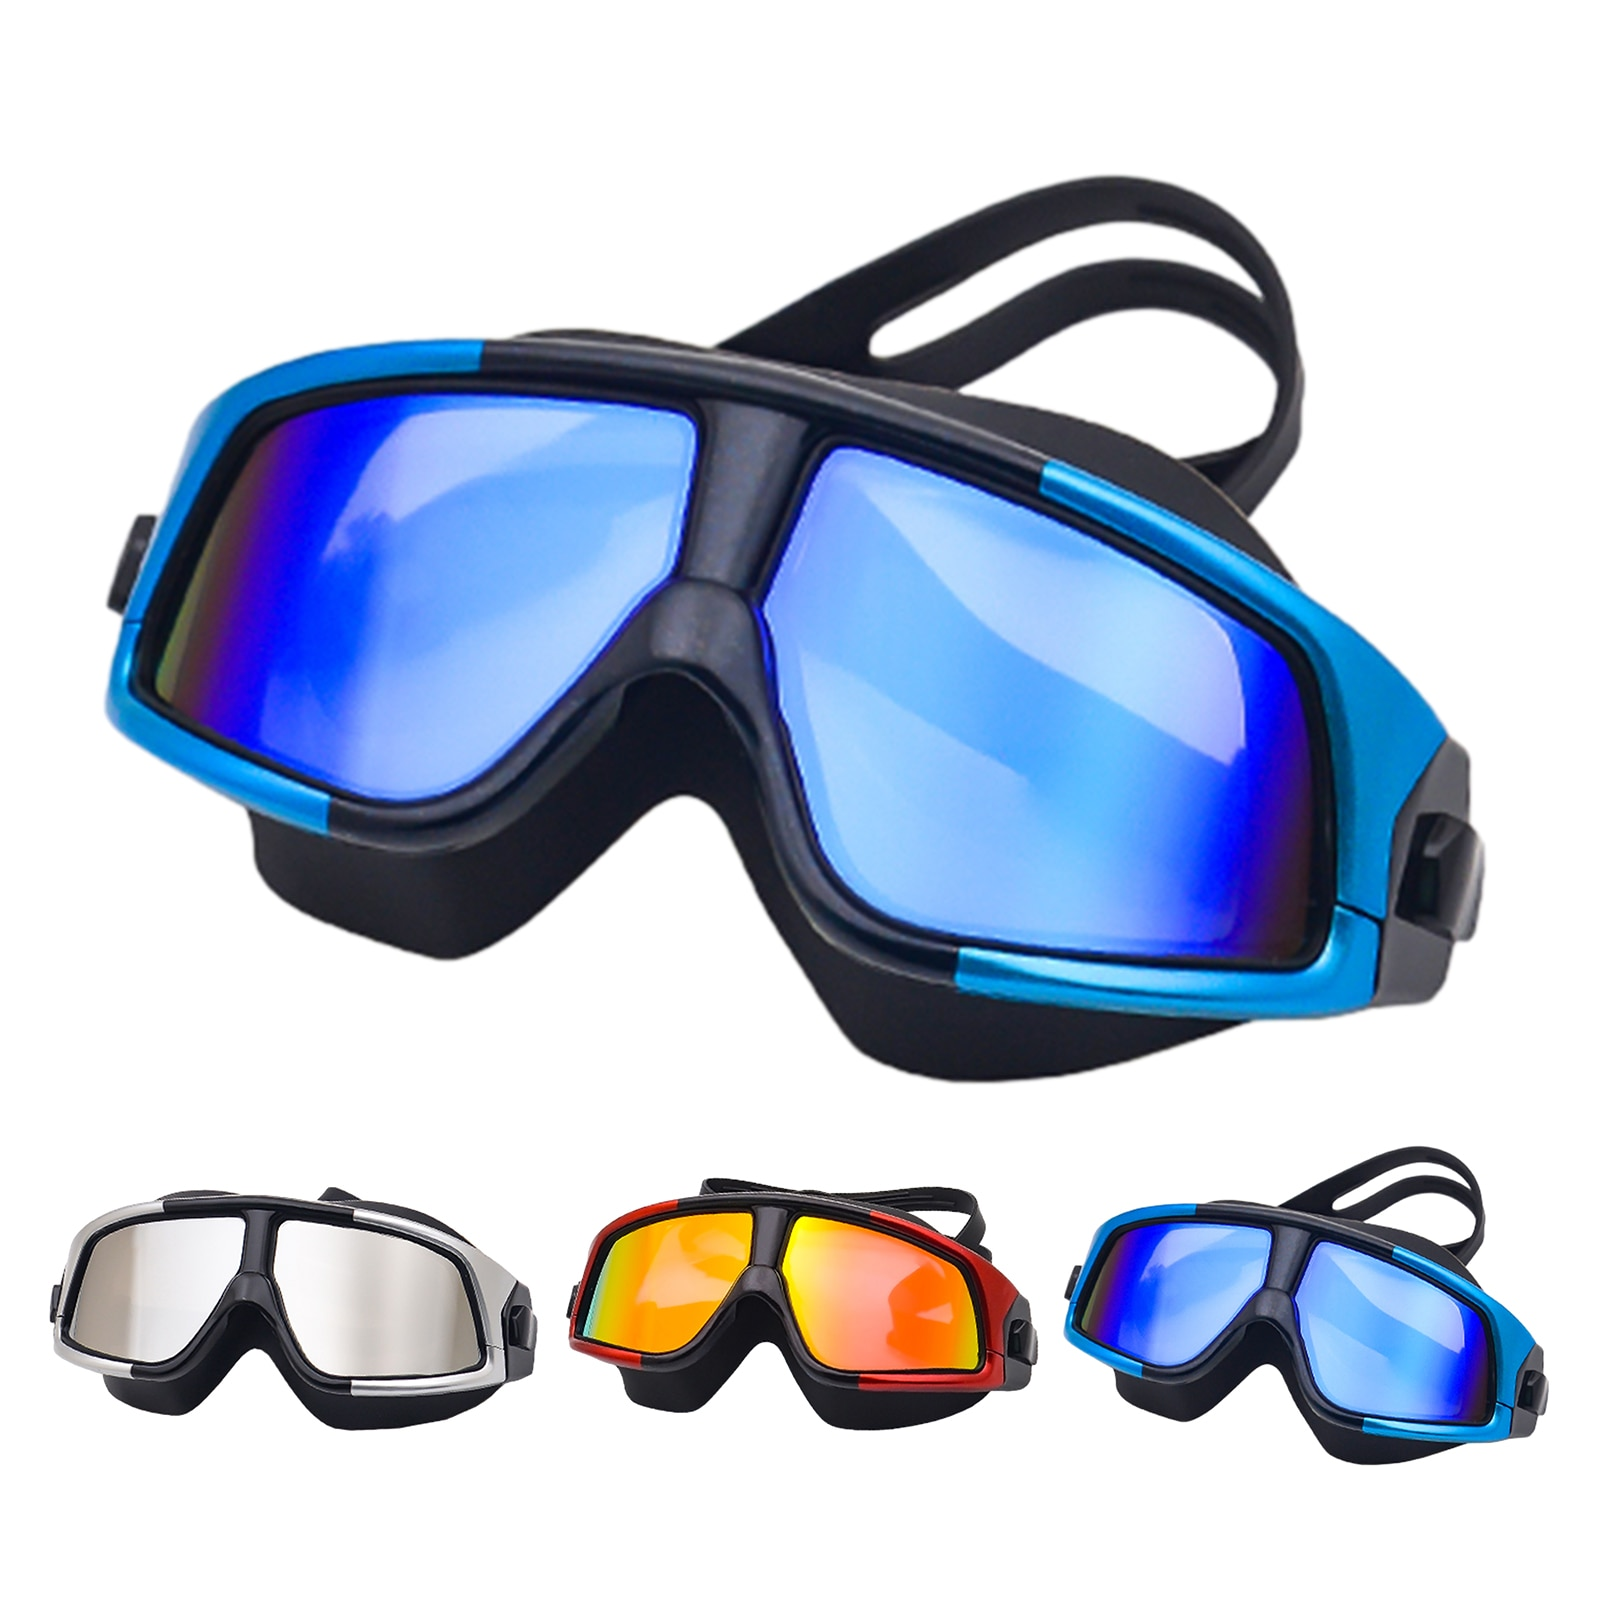 Professional Swimming Goggles Adult Waterproof Anti-ultraviolet Pressure-free Anti-fog Training